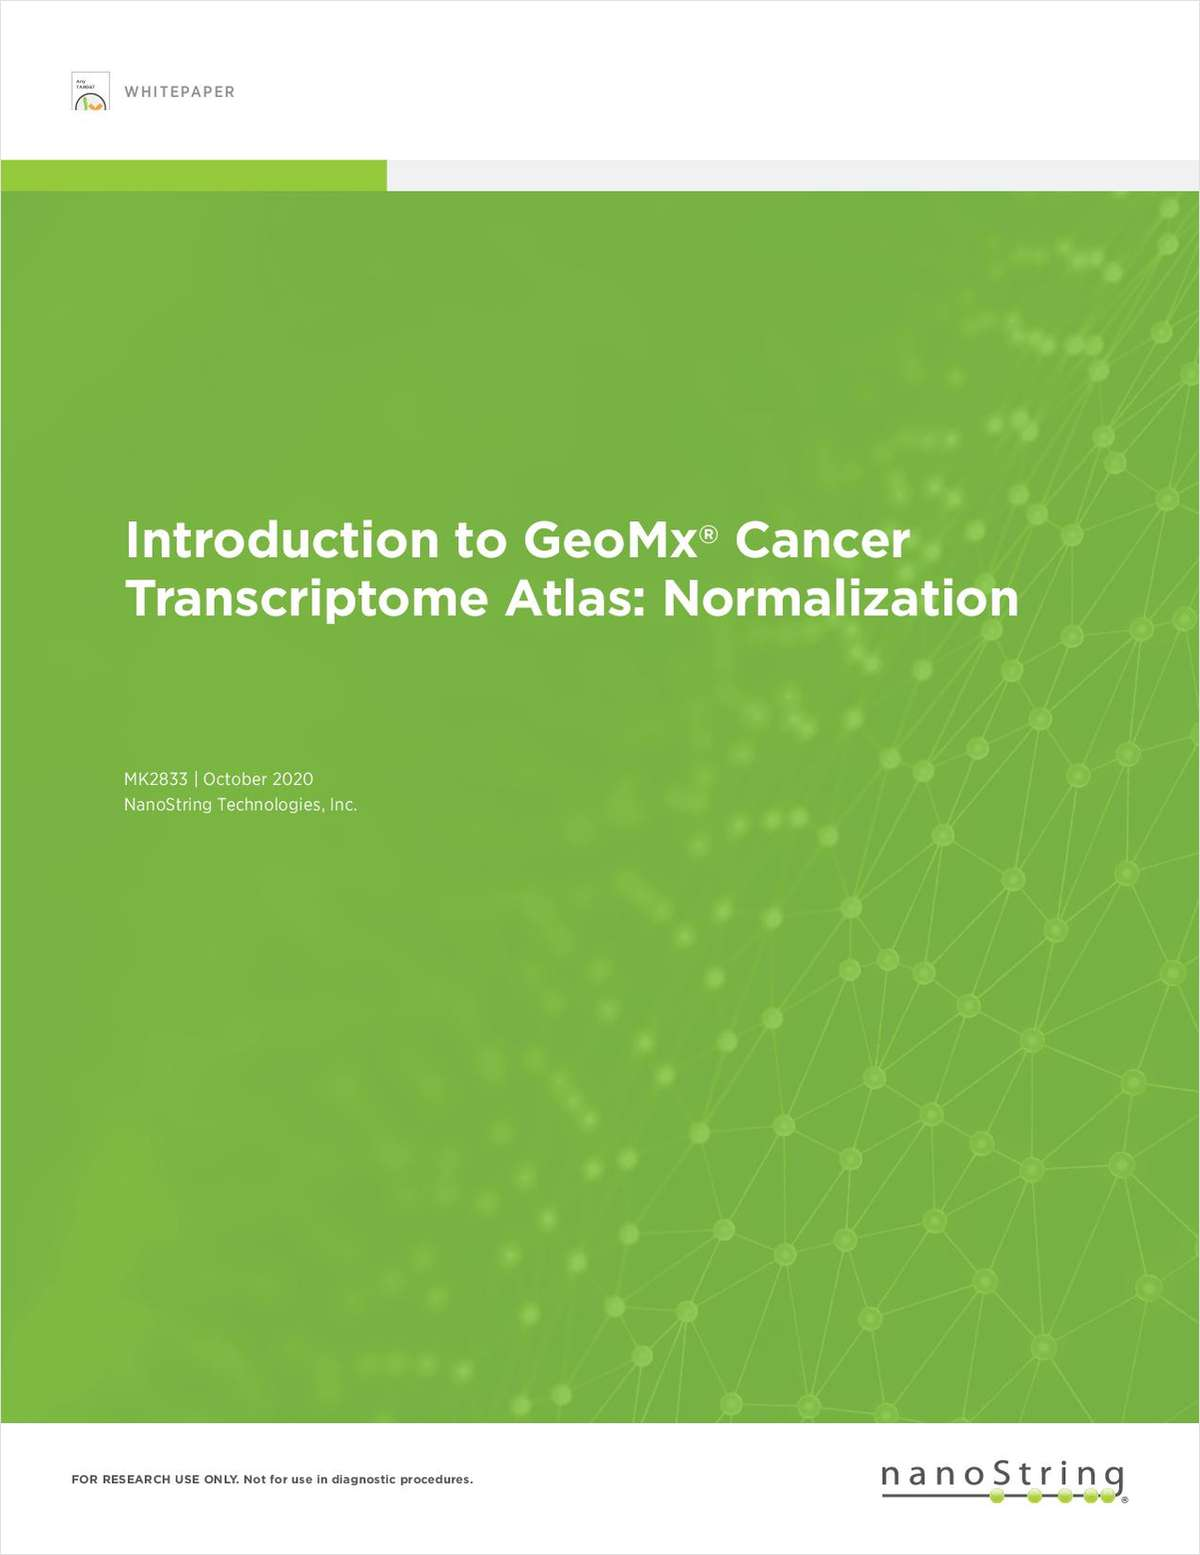 Introduction to GeoMx Cancer Transcriptome Atlas: Normalization